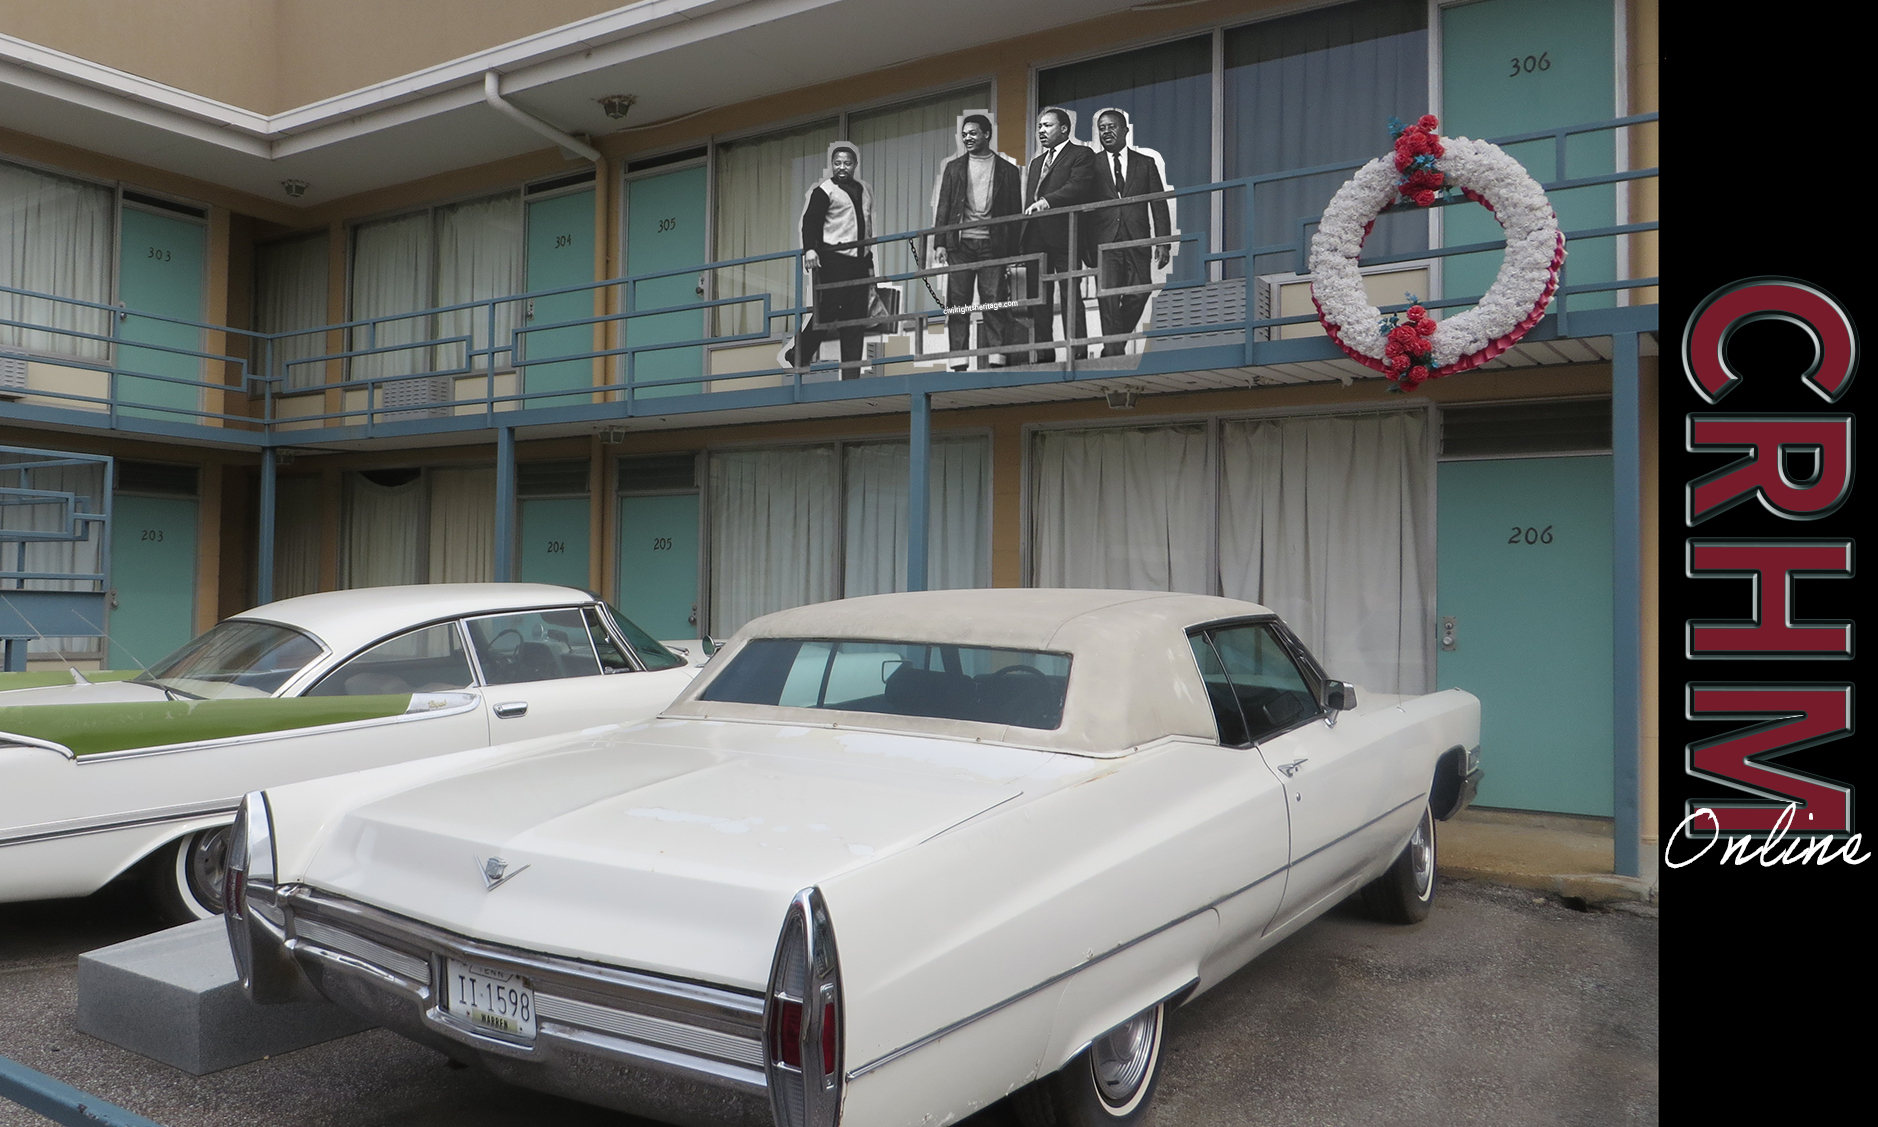 Civil Rights Heritage Museum Online